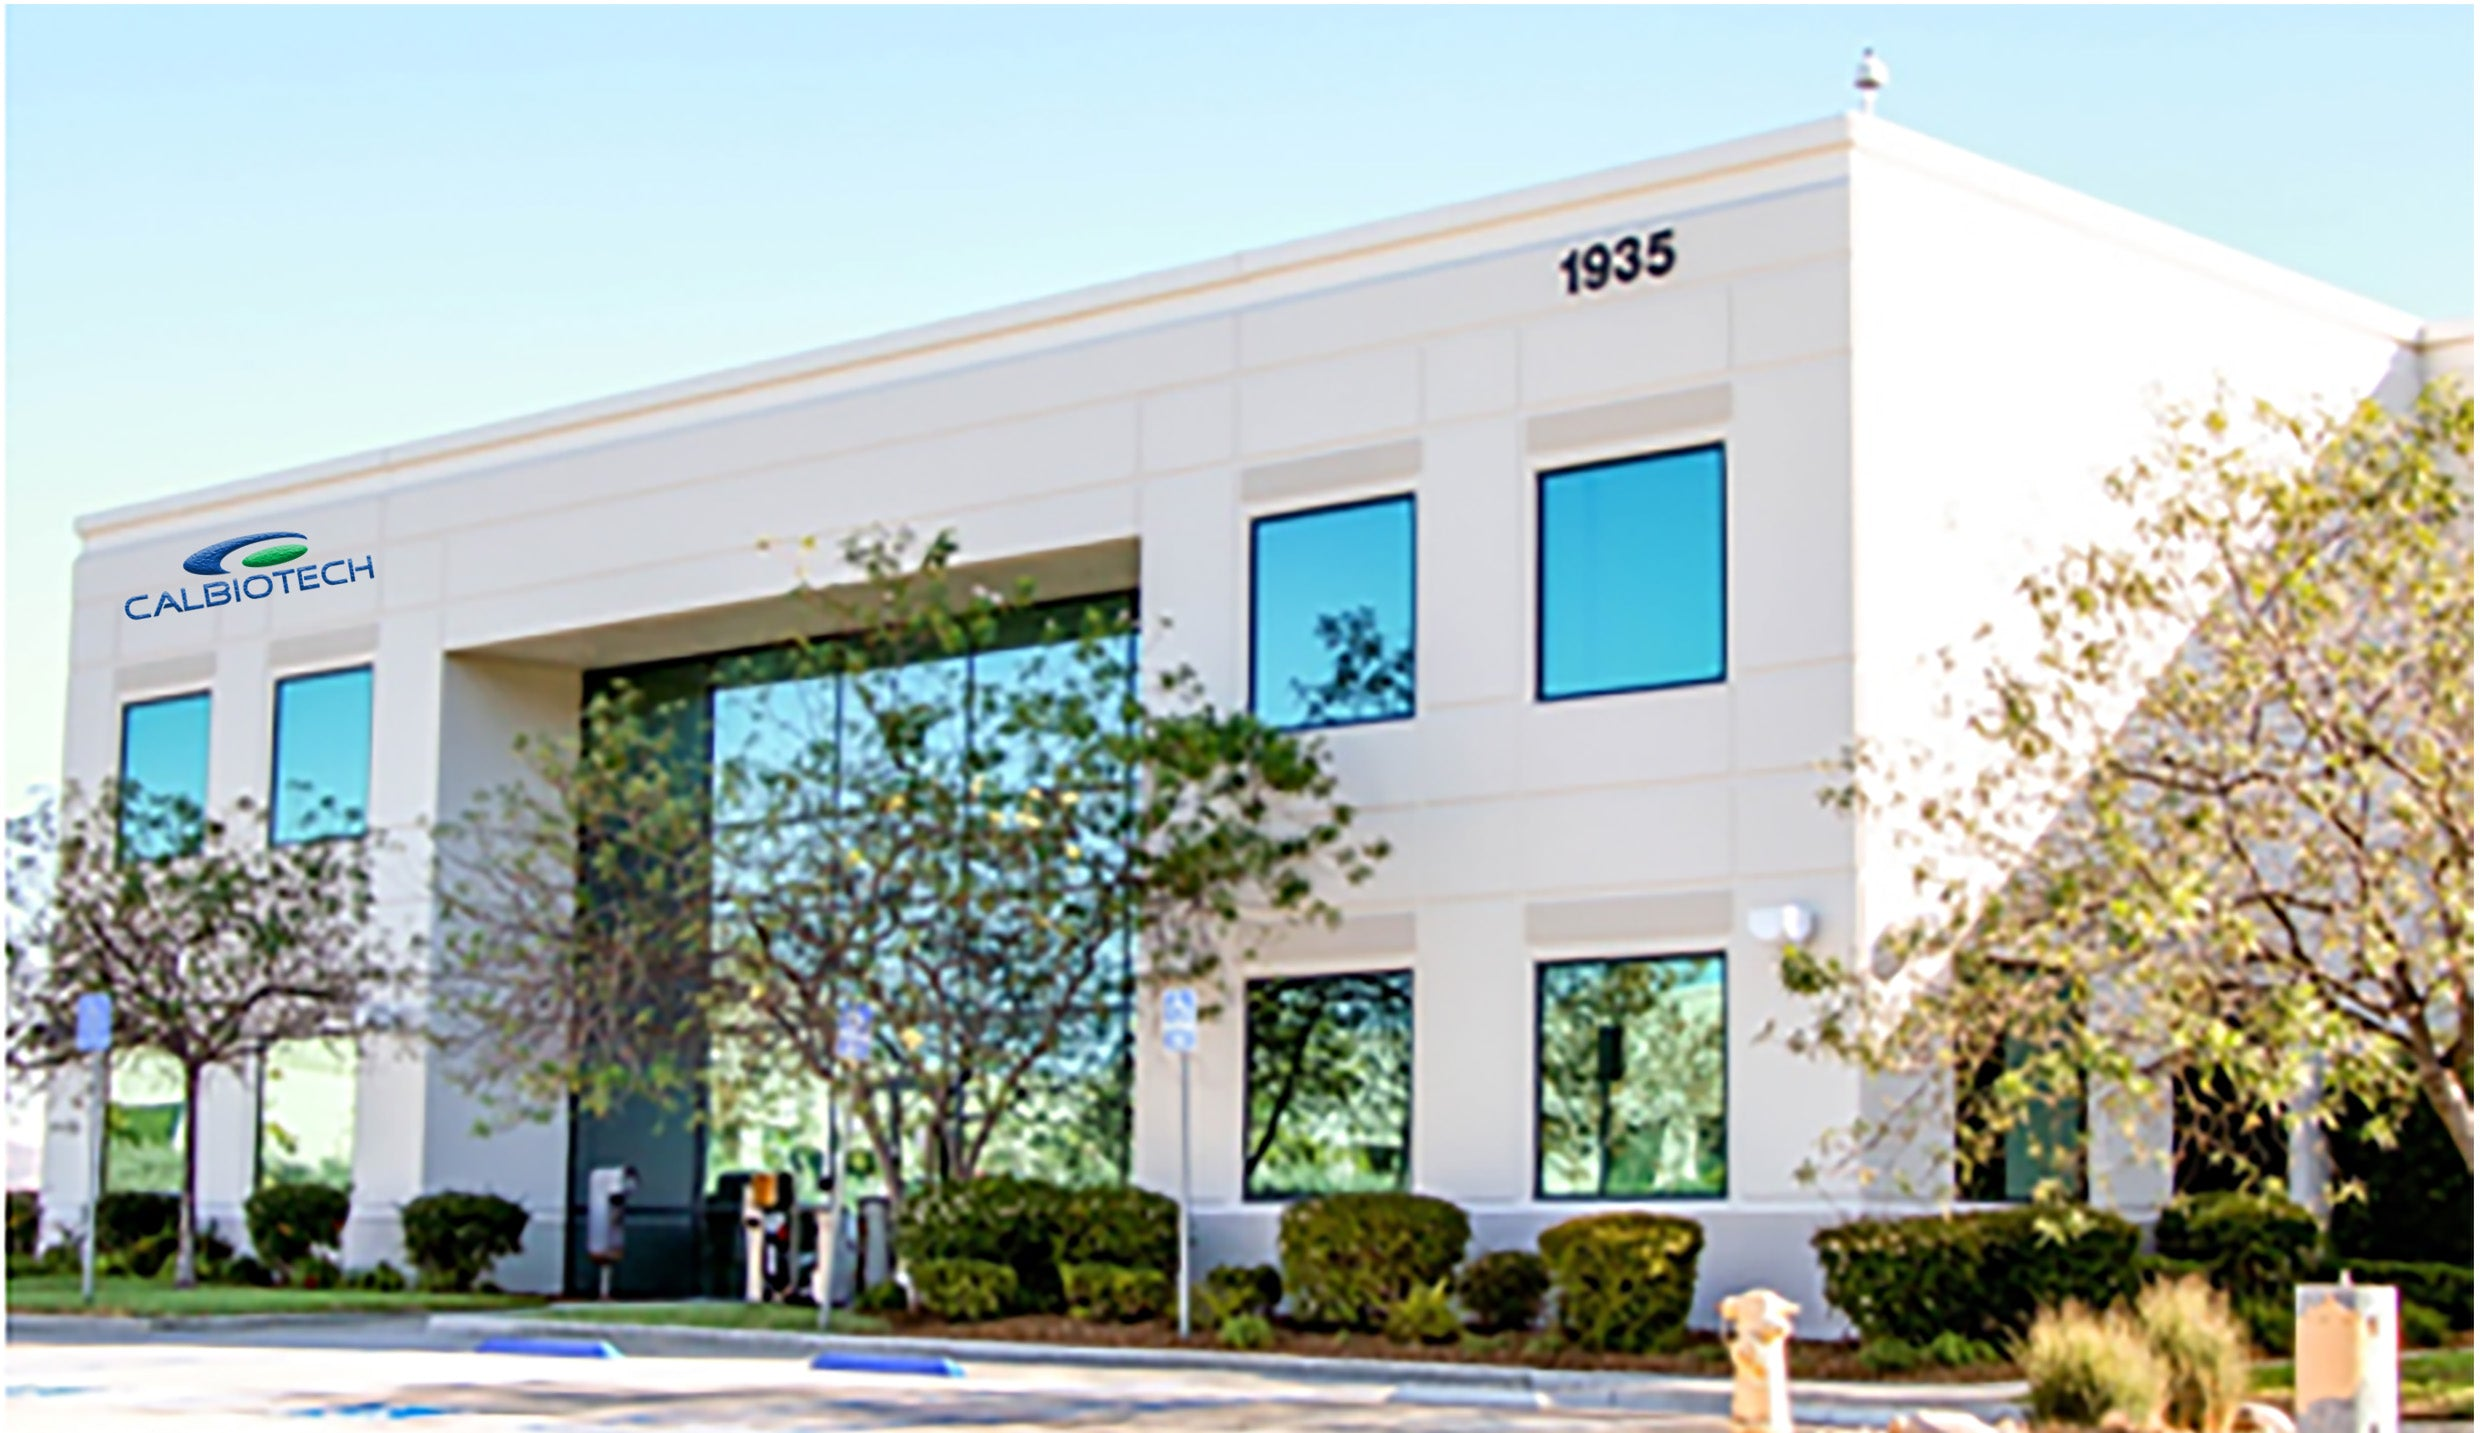 Calbiotech new facility